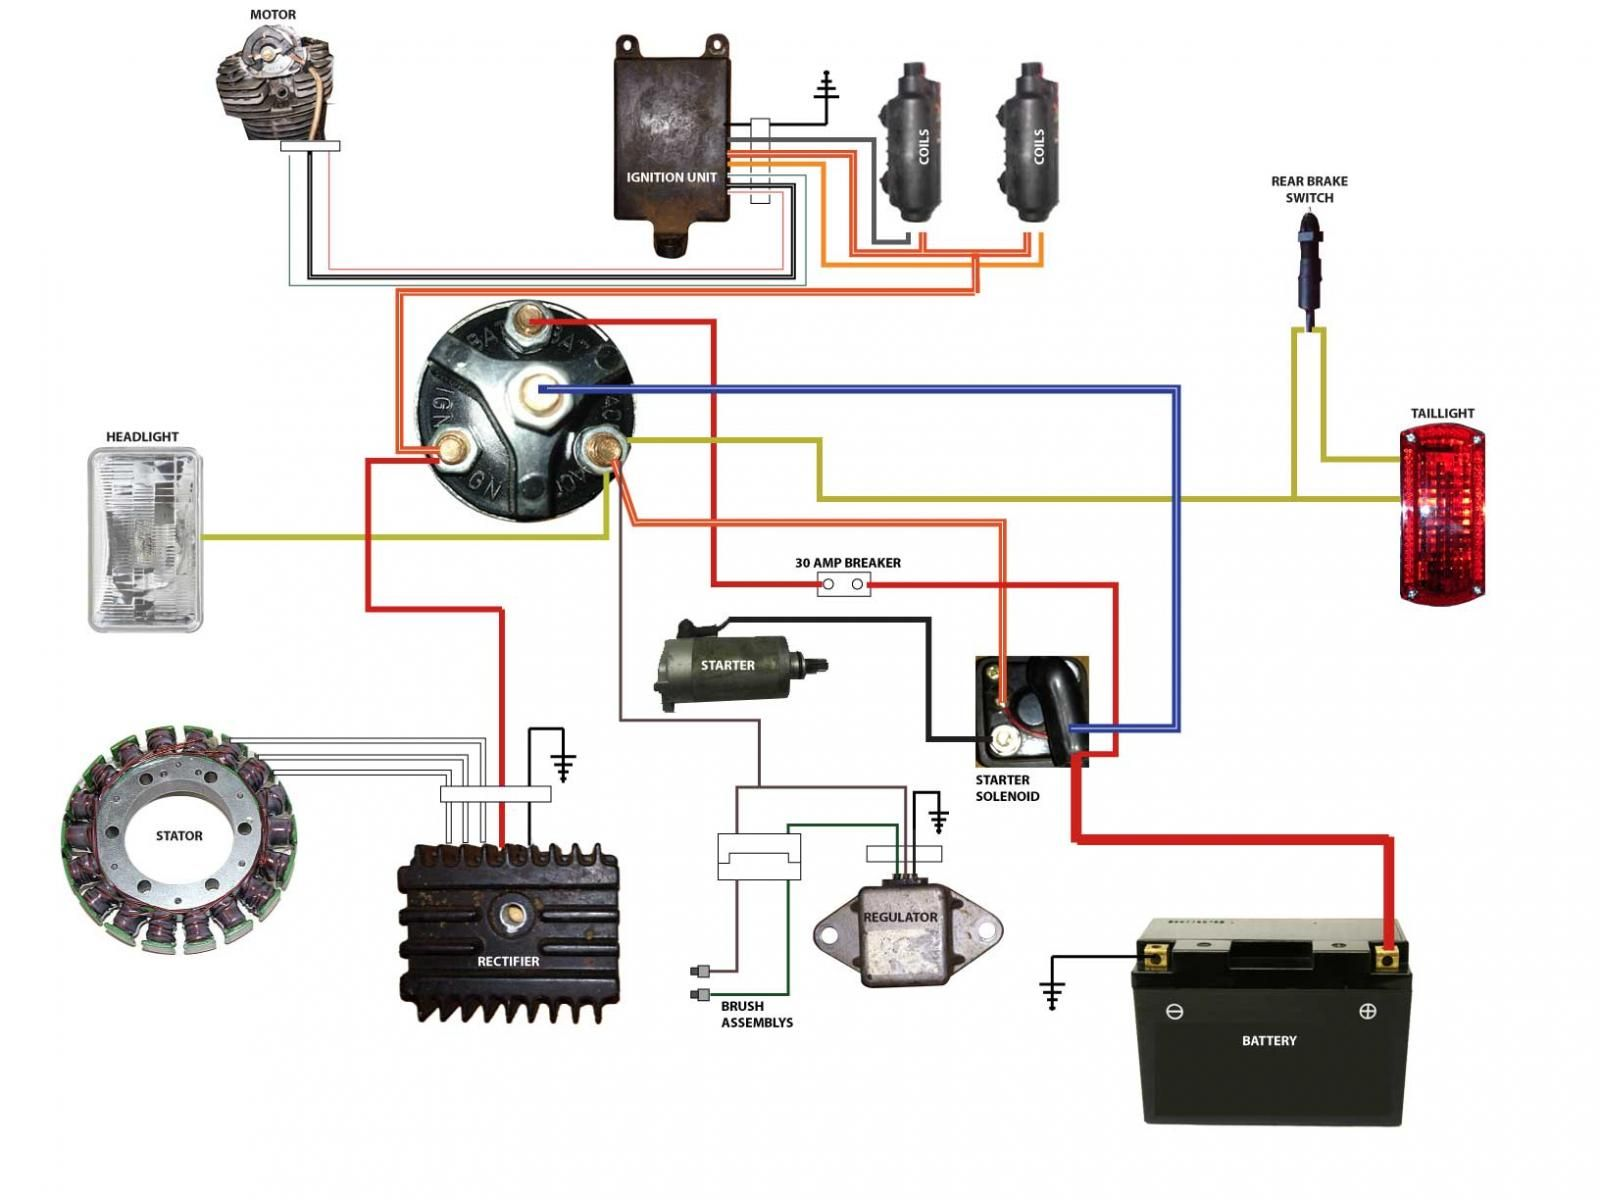 simplified wiring diagram for xs400 cafe | Projects to Try